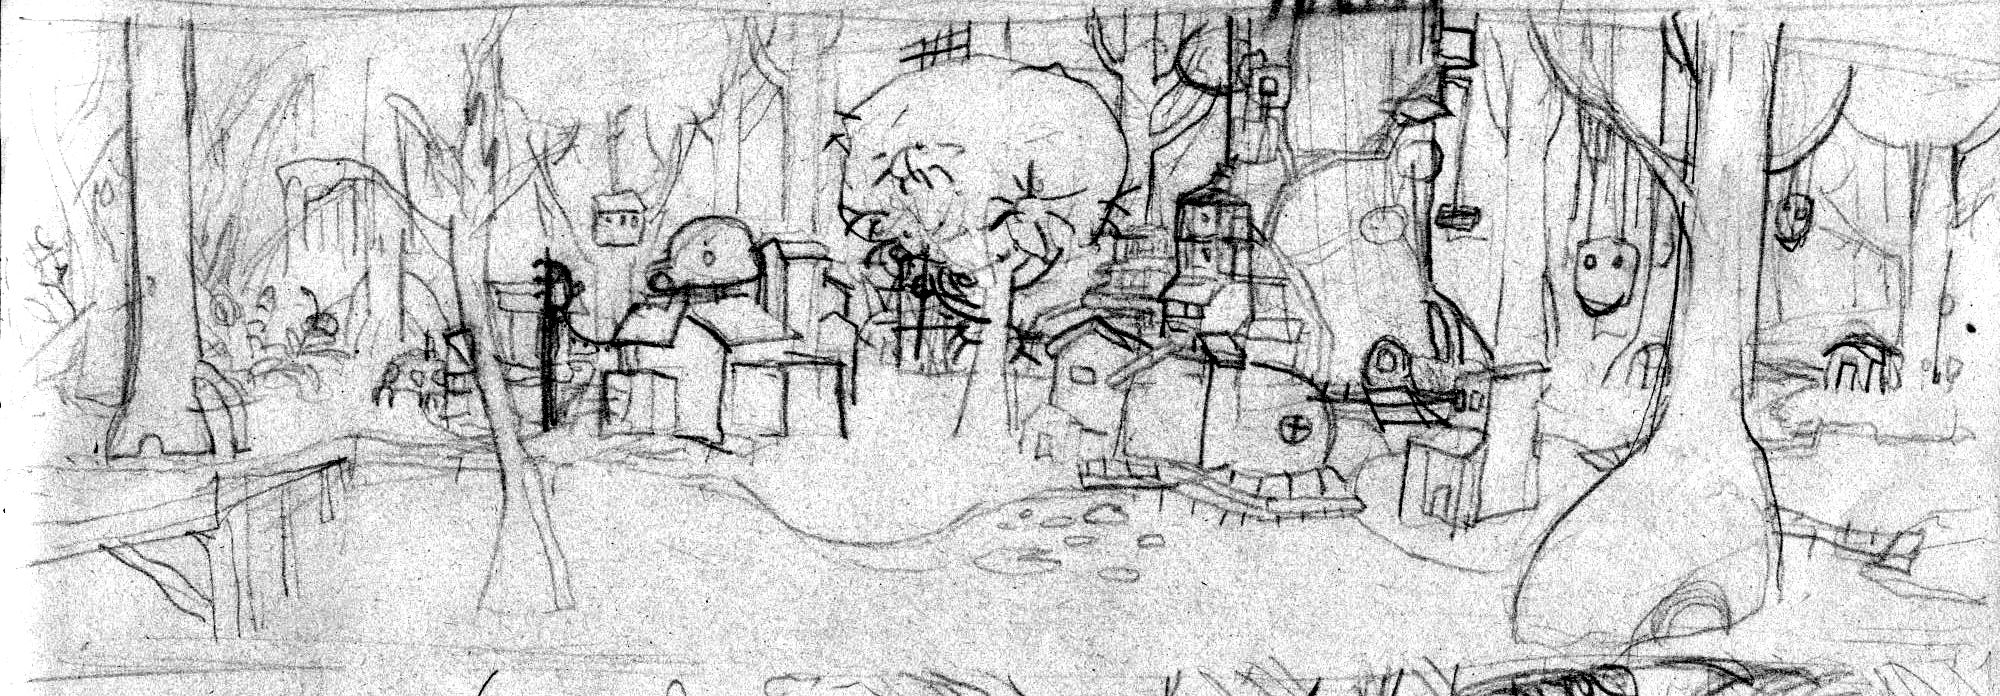 a crude pencil sketch showing a swamp village. A lot a the buildings have a very organic architecture stylr.